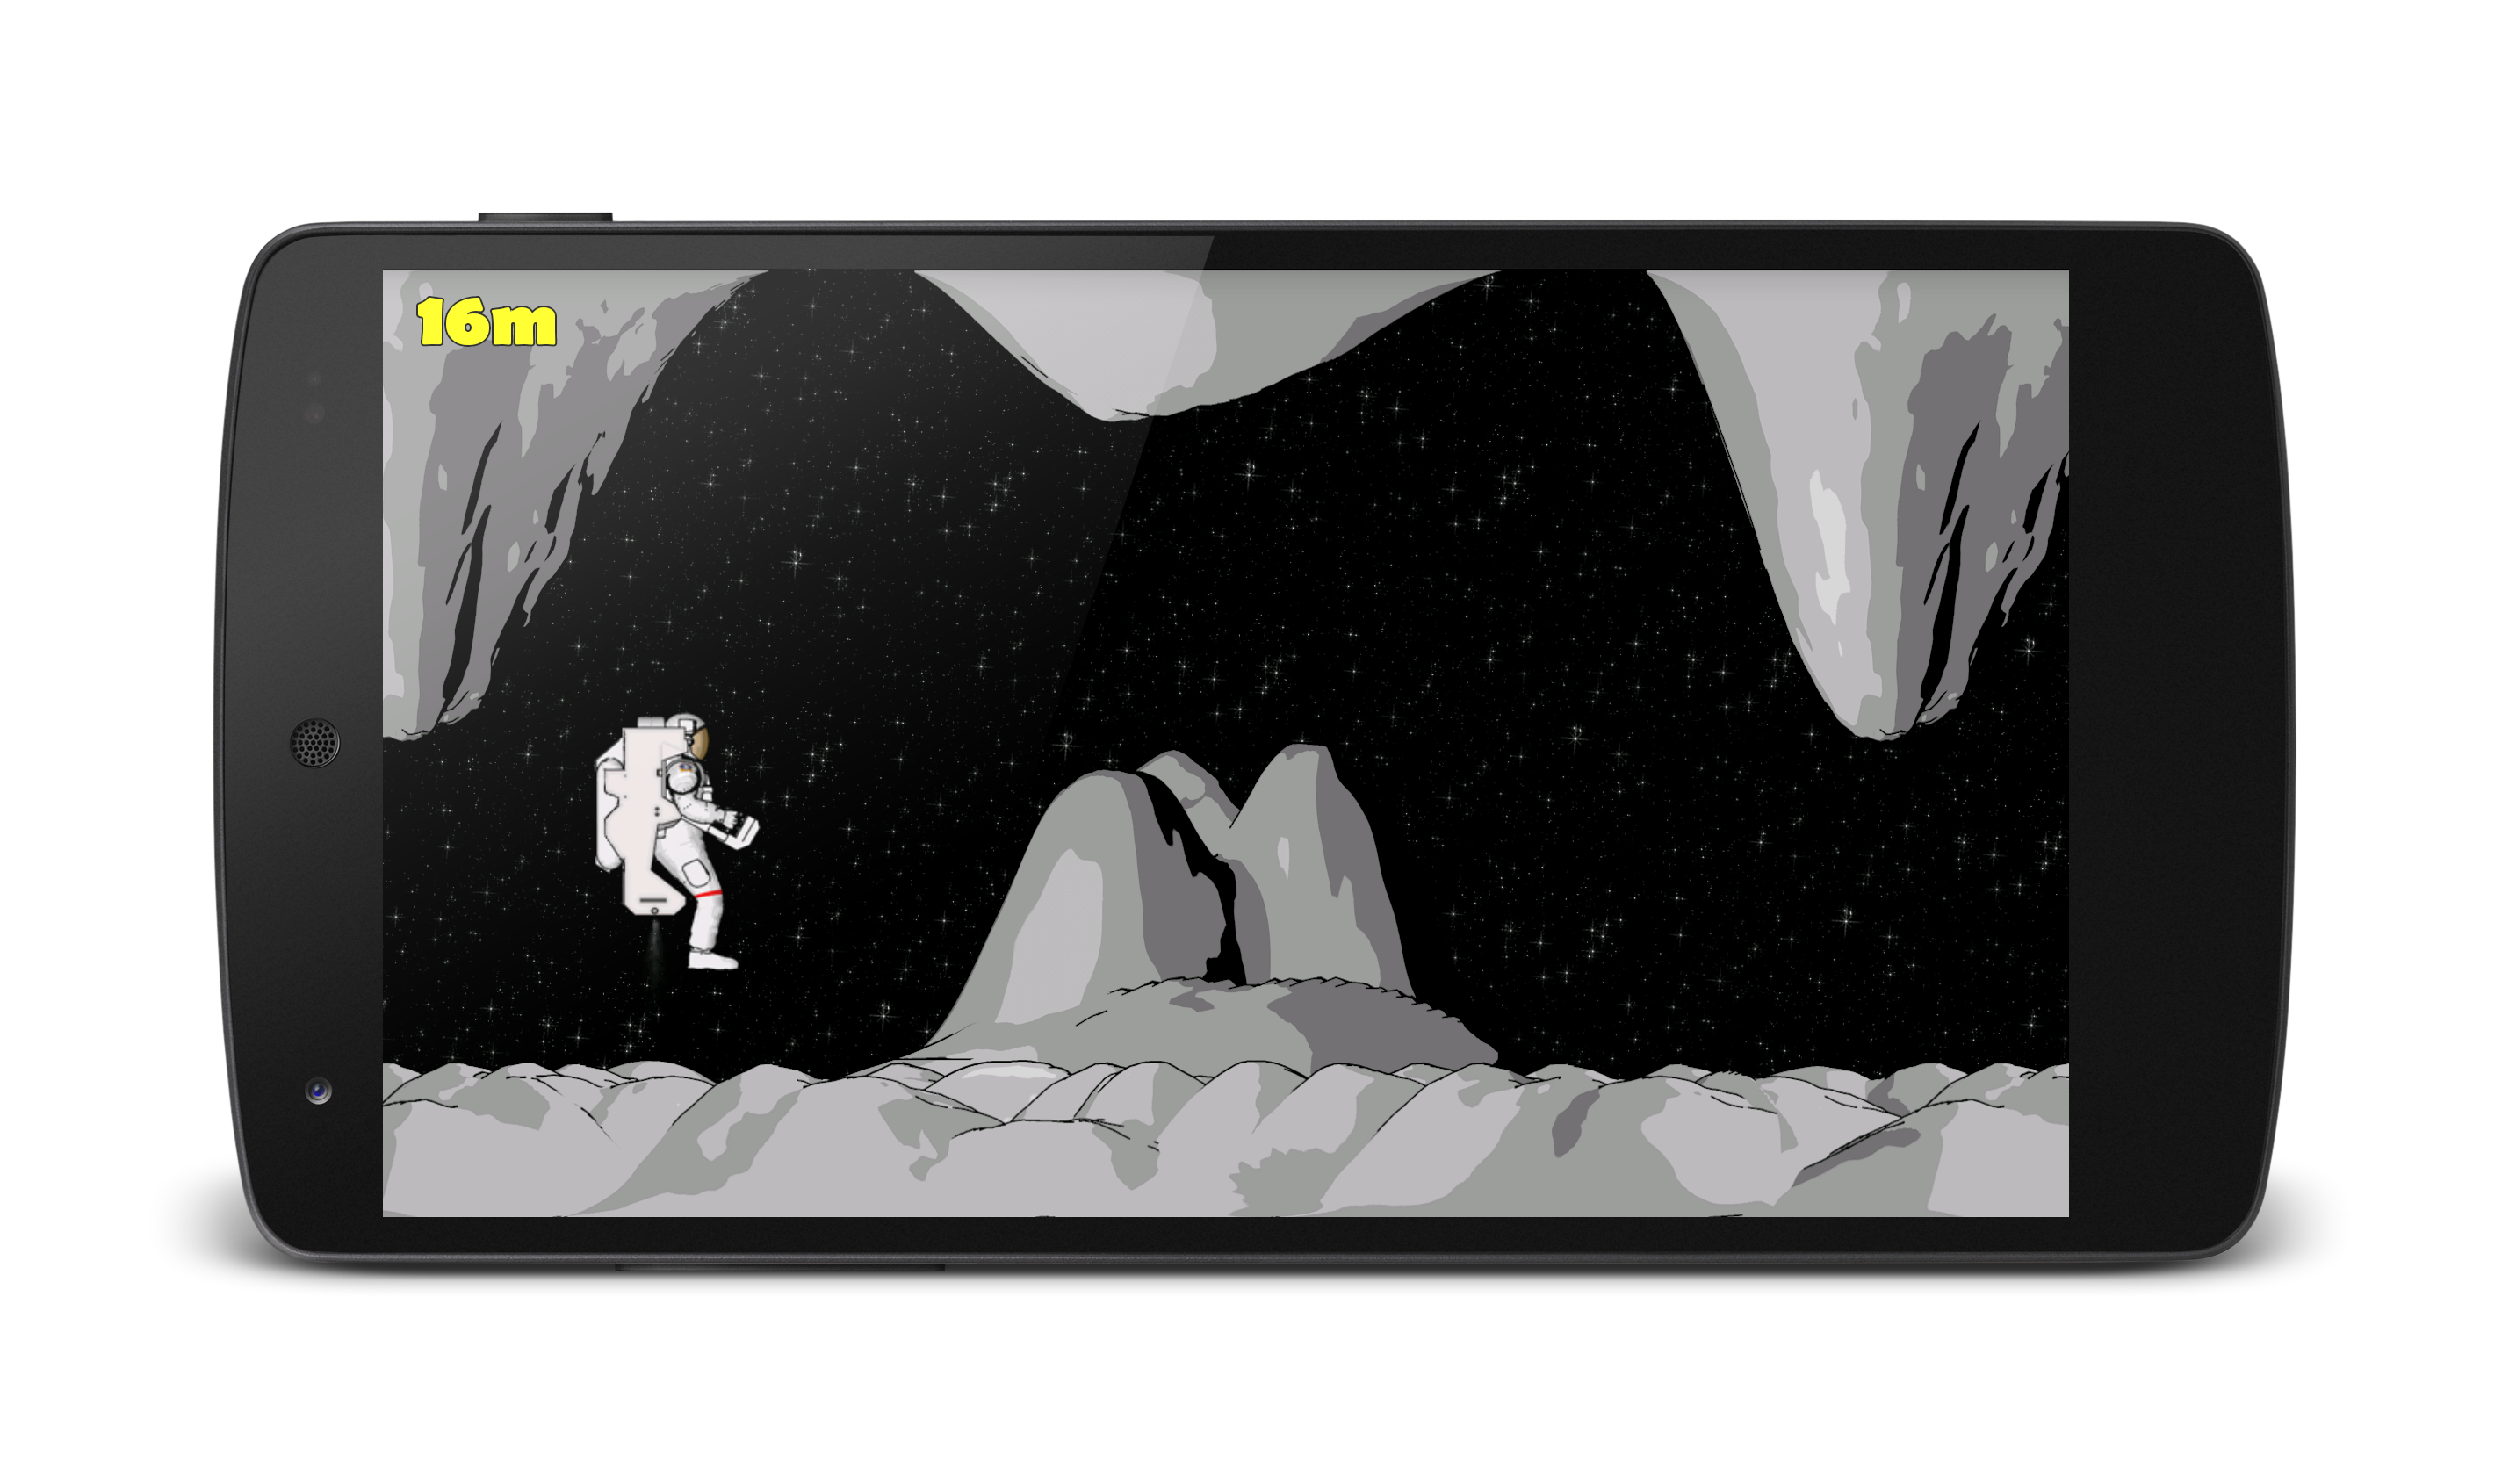 Moon Man Game for Android